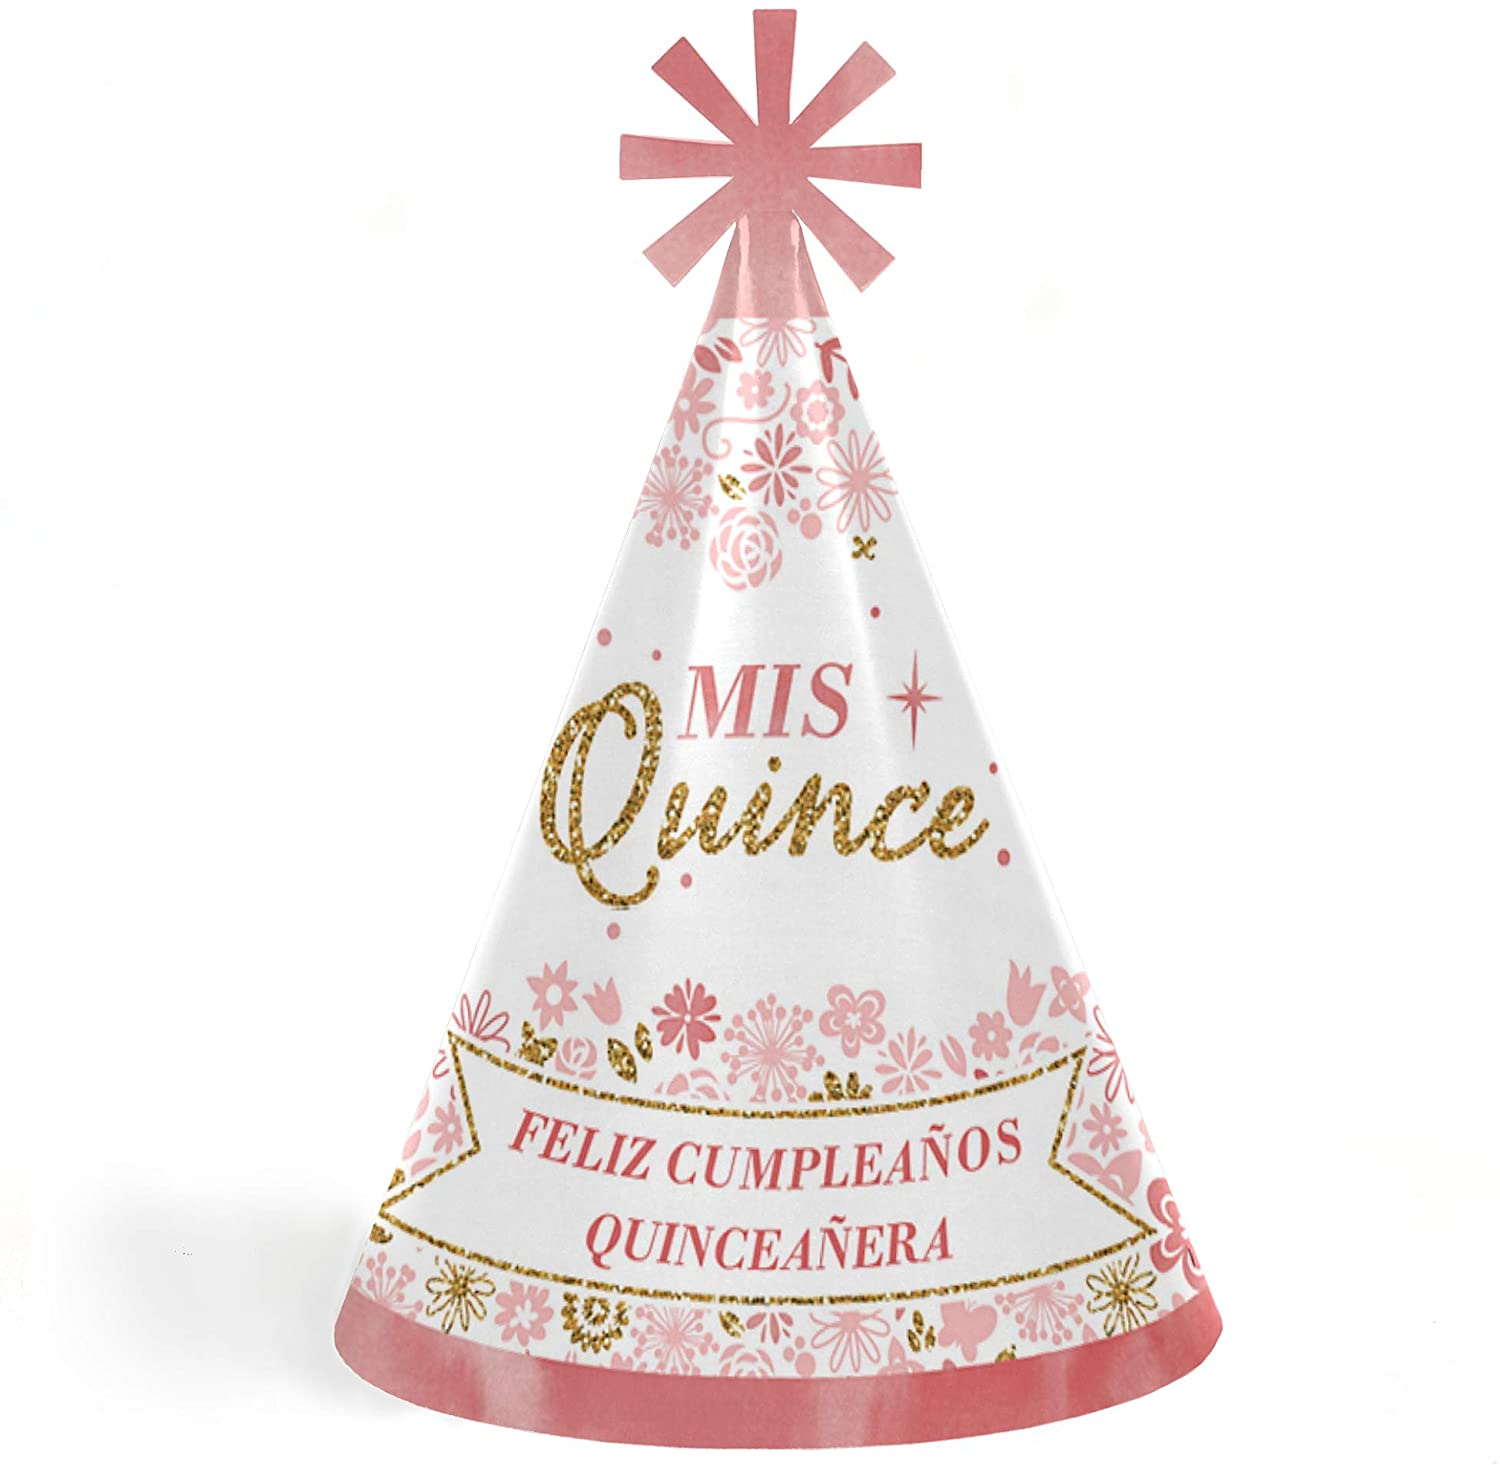 Mis Quince Anos - Cone Happy Birthday Party Hats for Kids and Adults - Set of 8 (Standard Size)